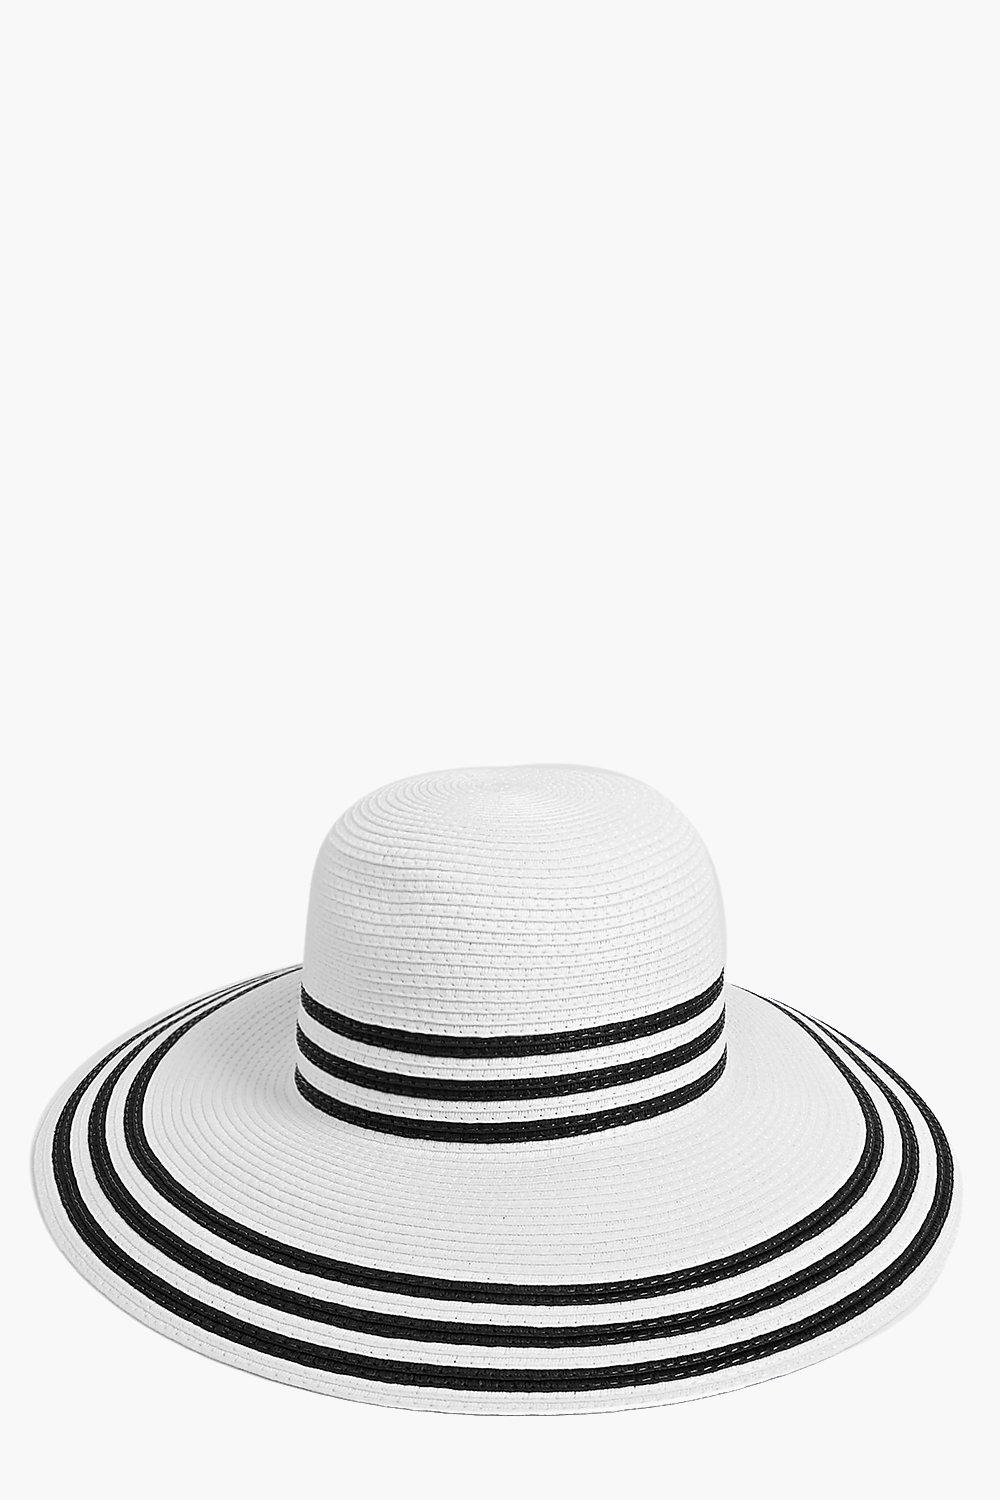 Stripe Edge Straw Floppy Hat white